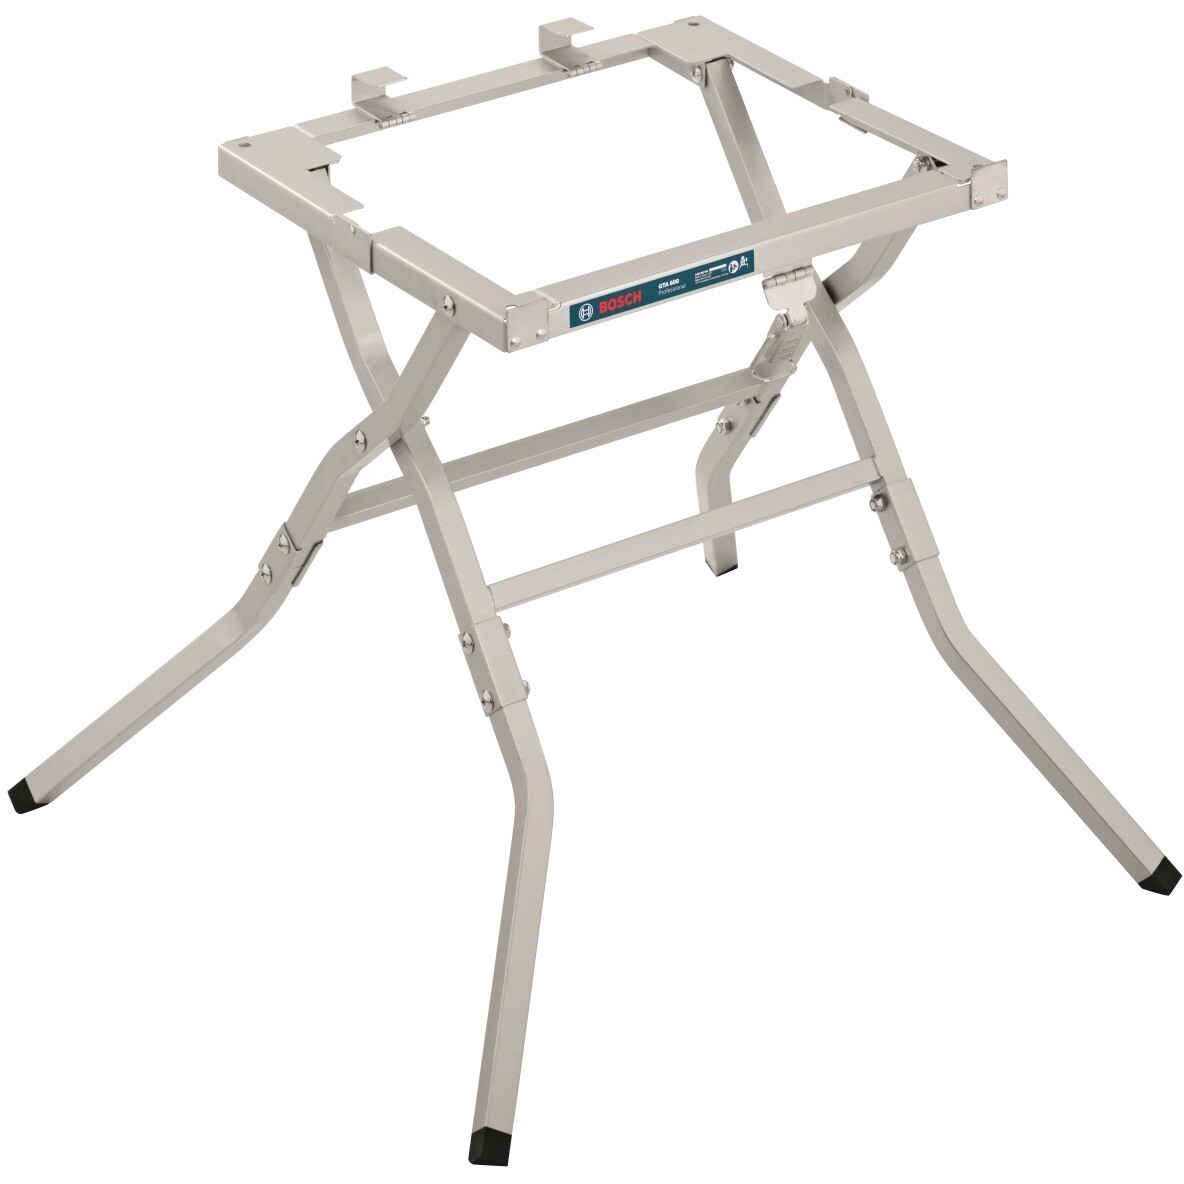 Bosch GTA600 Benchtop Leg Stand for Table Saw